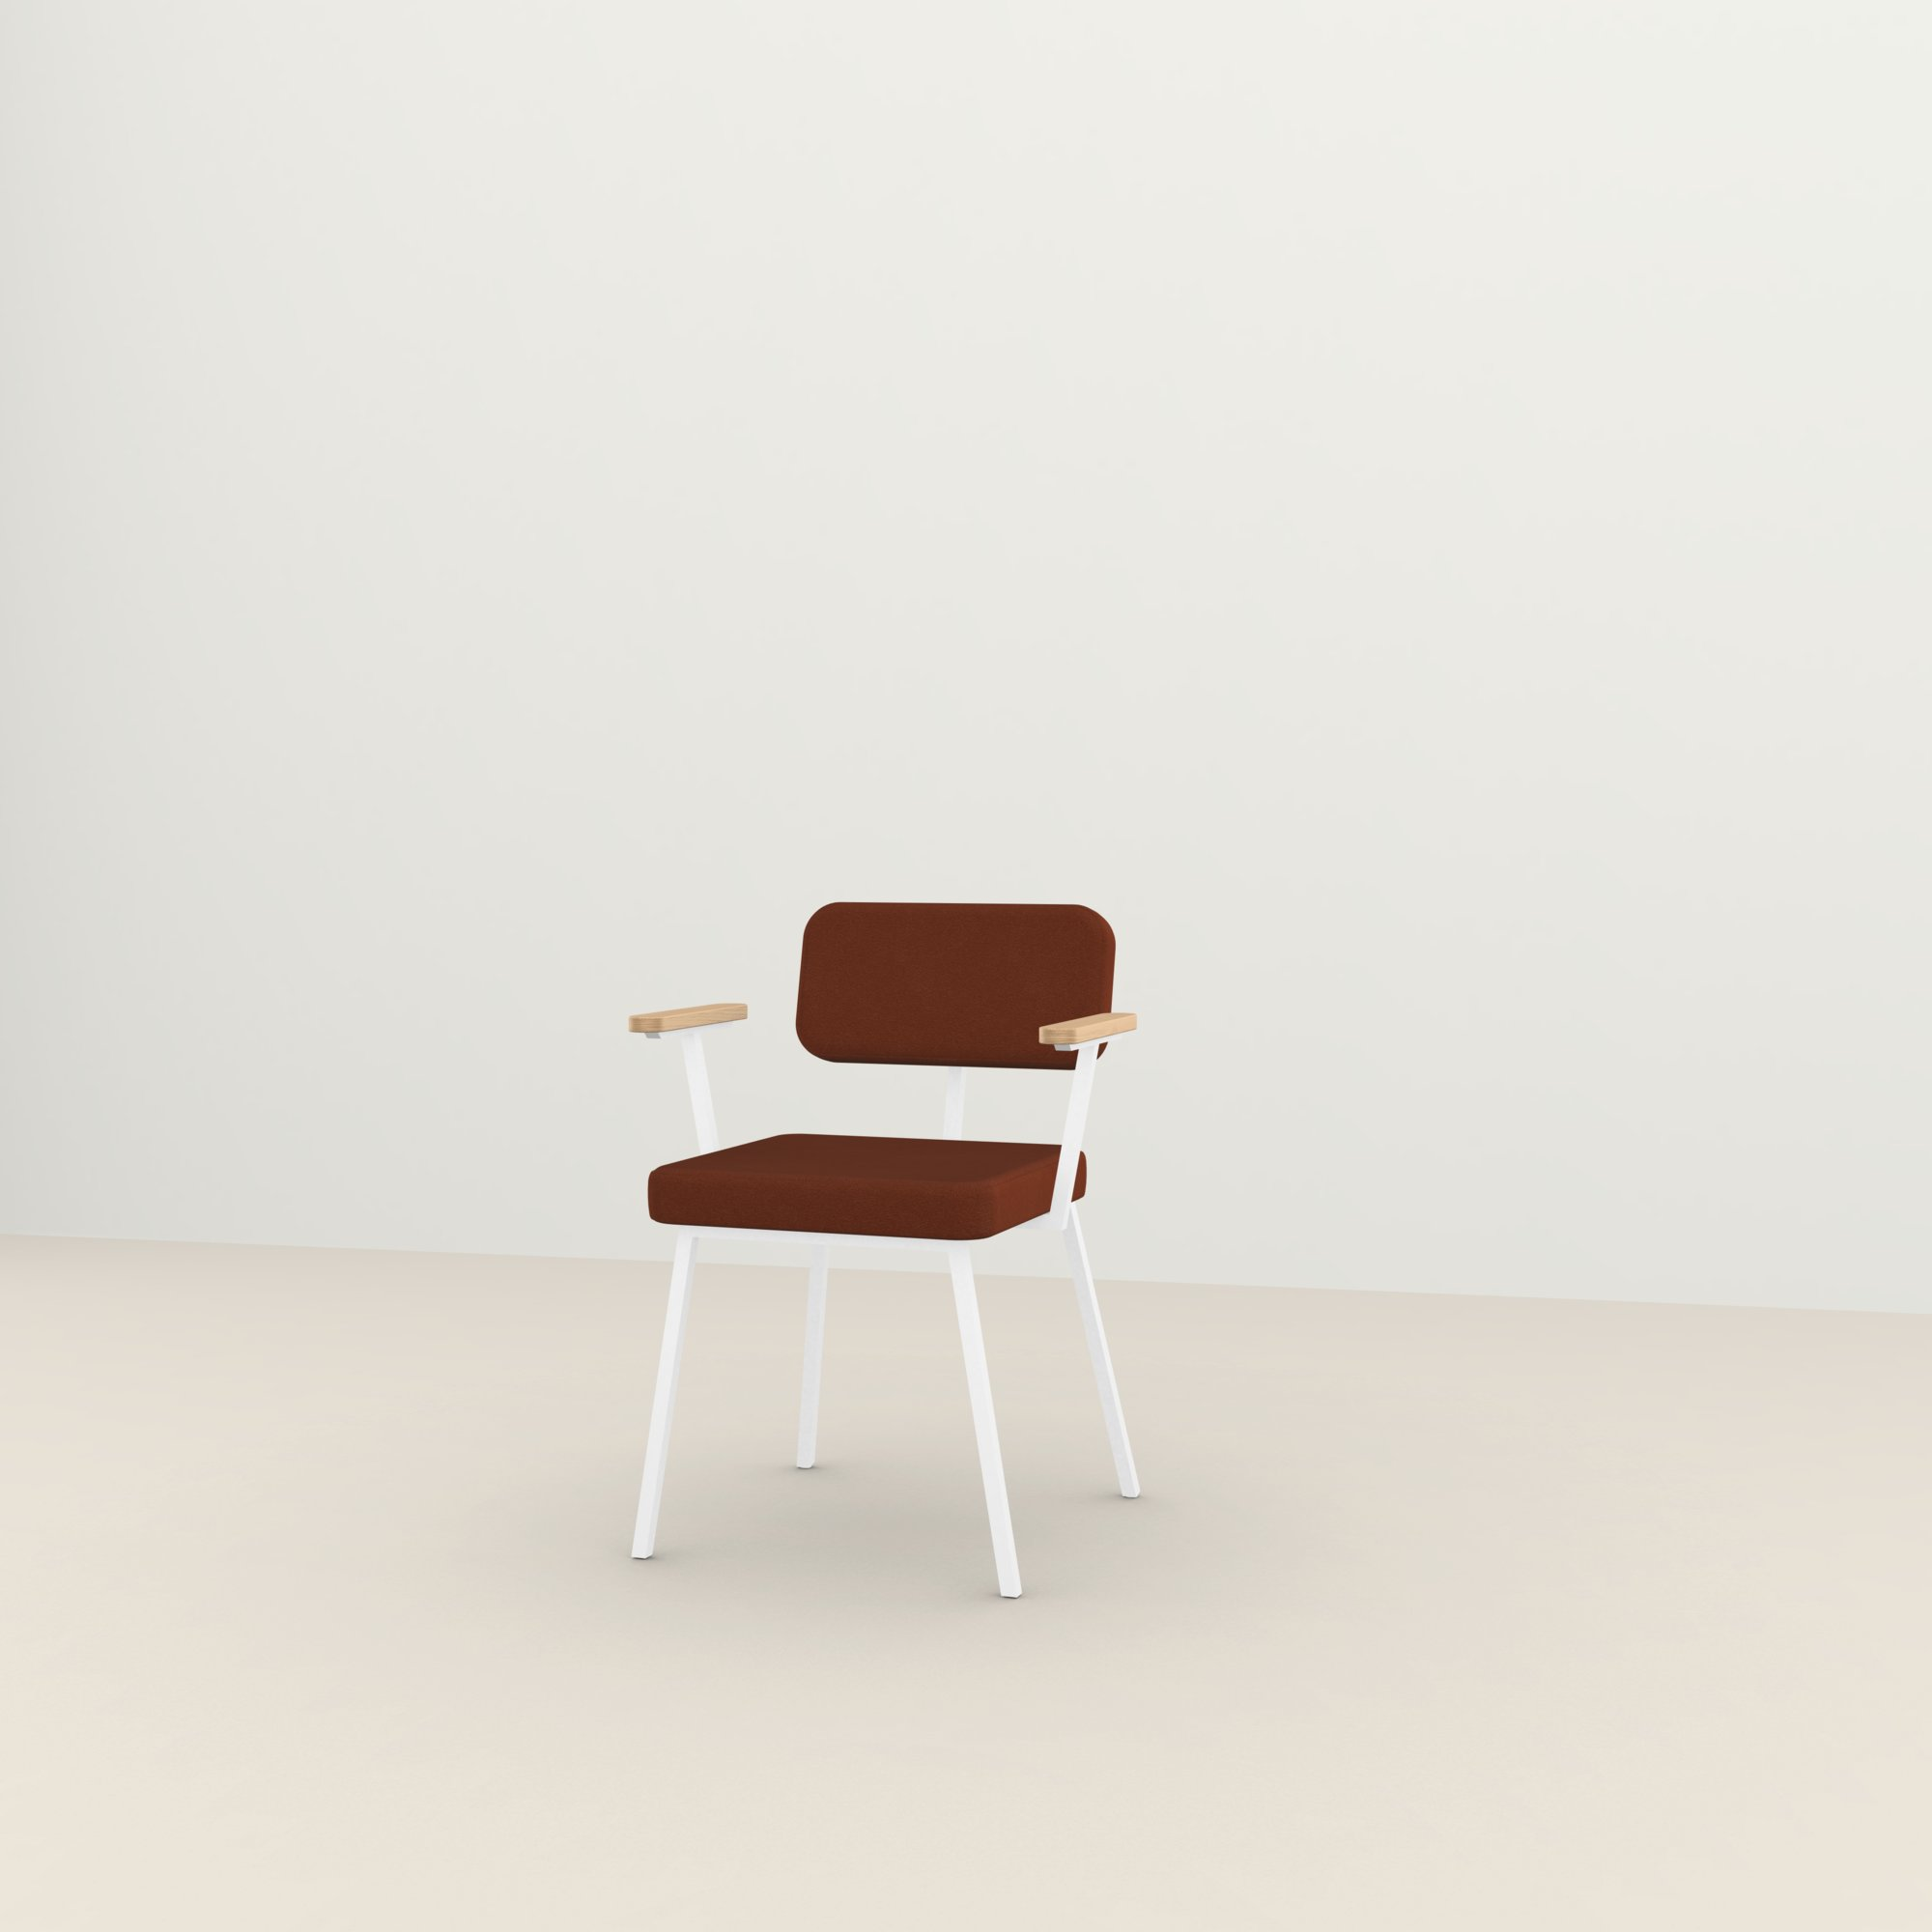 Design eetkamerstoel | Ode Chair with armrest tonus4 474 | Studio HENK |